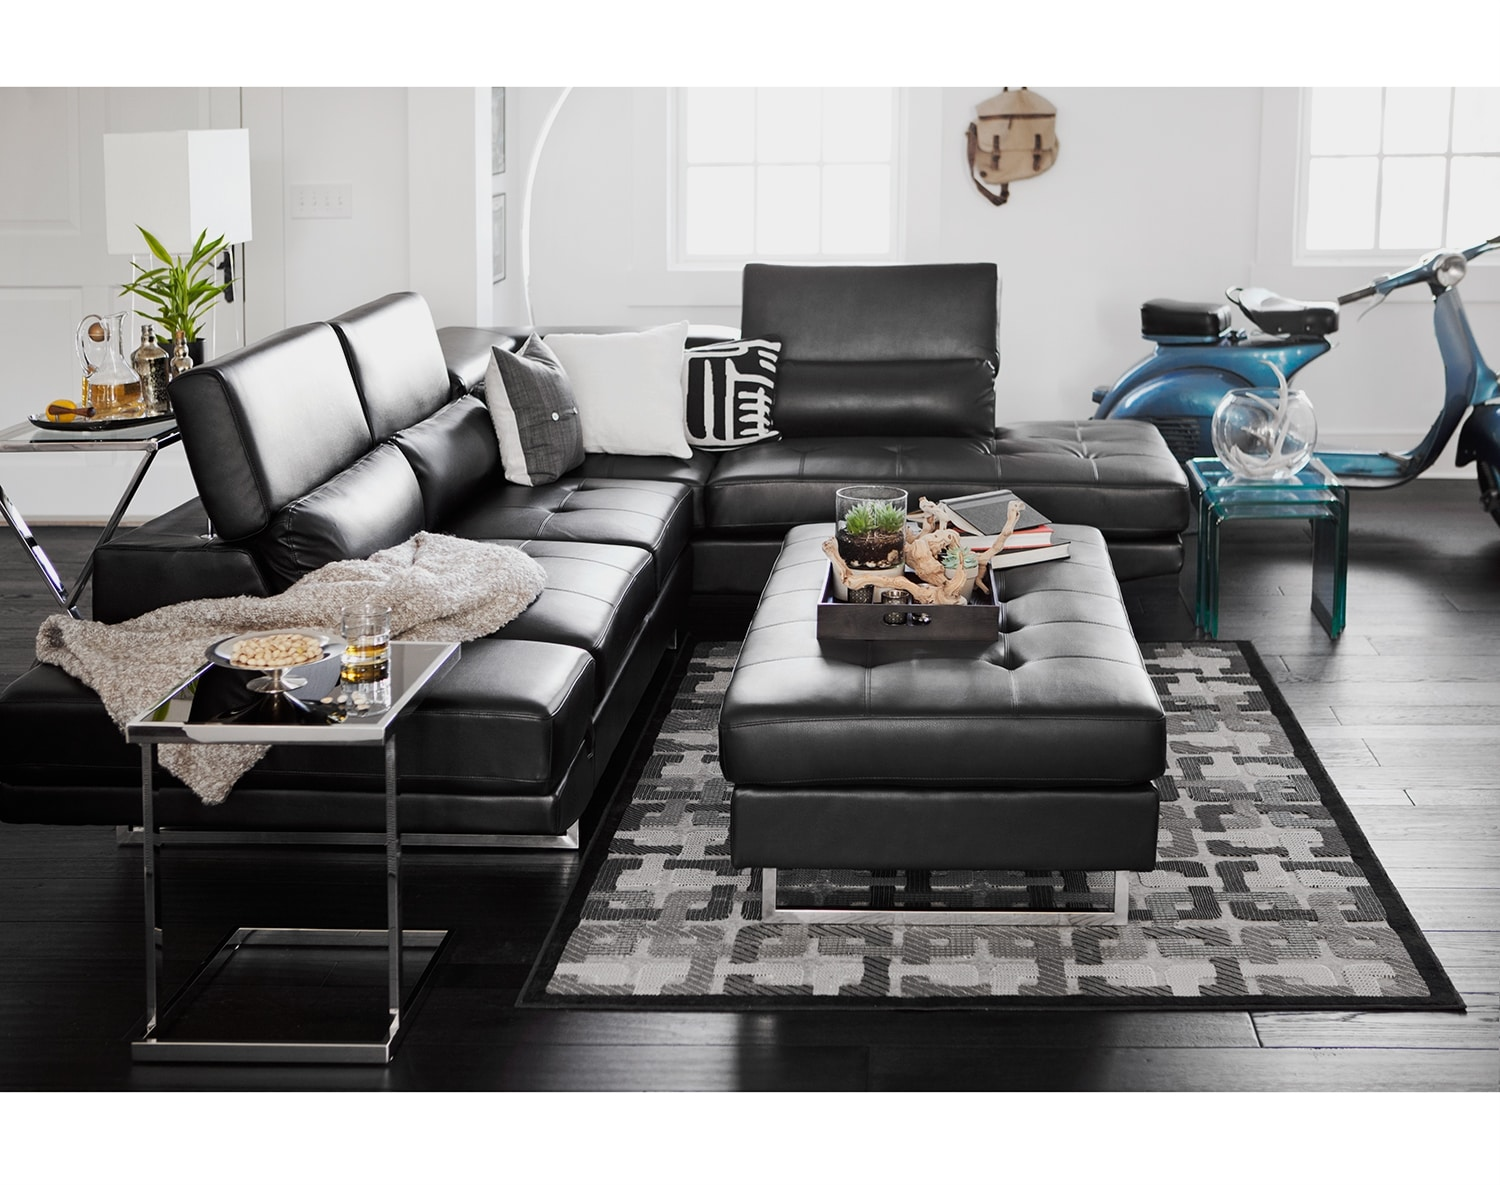 Living Room Furniture - The Milan Black Collection - 2 Pc. Sectional